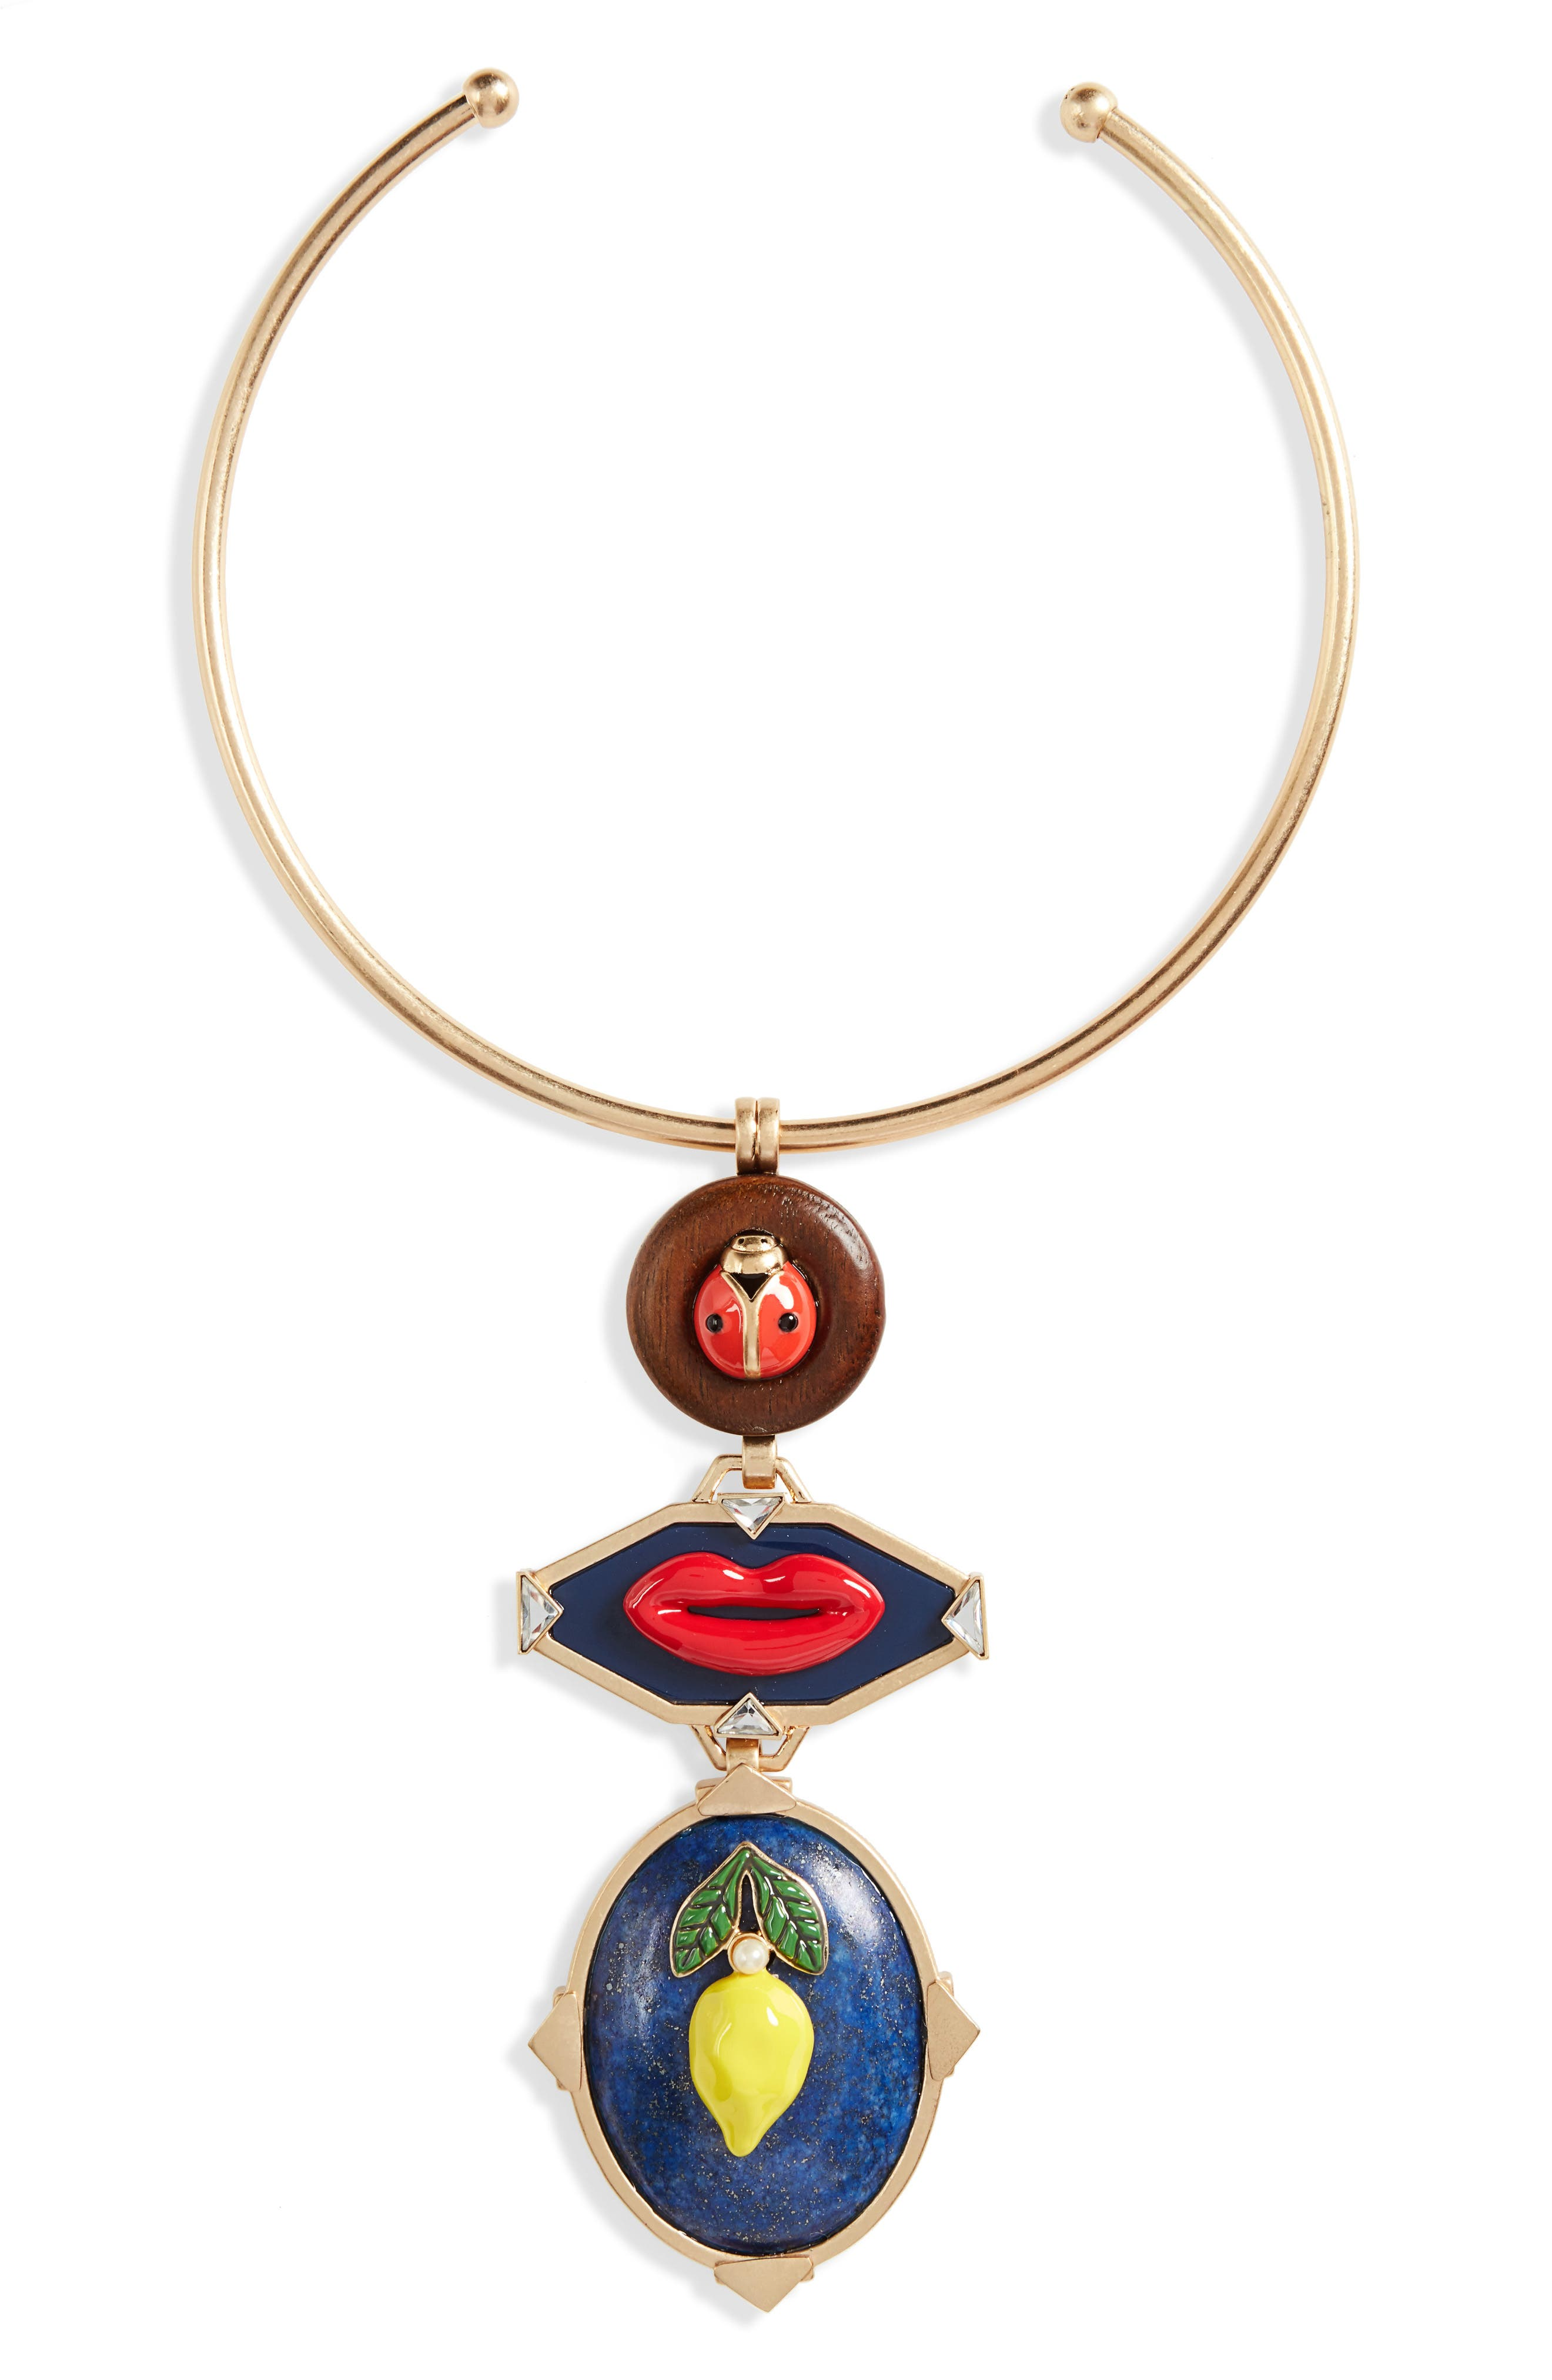 Tory Burch Crazy Charms Statement Collar Necklace